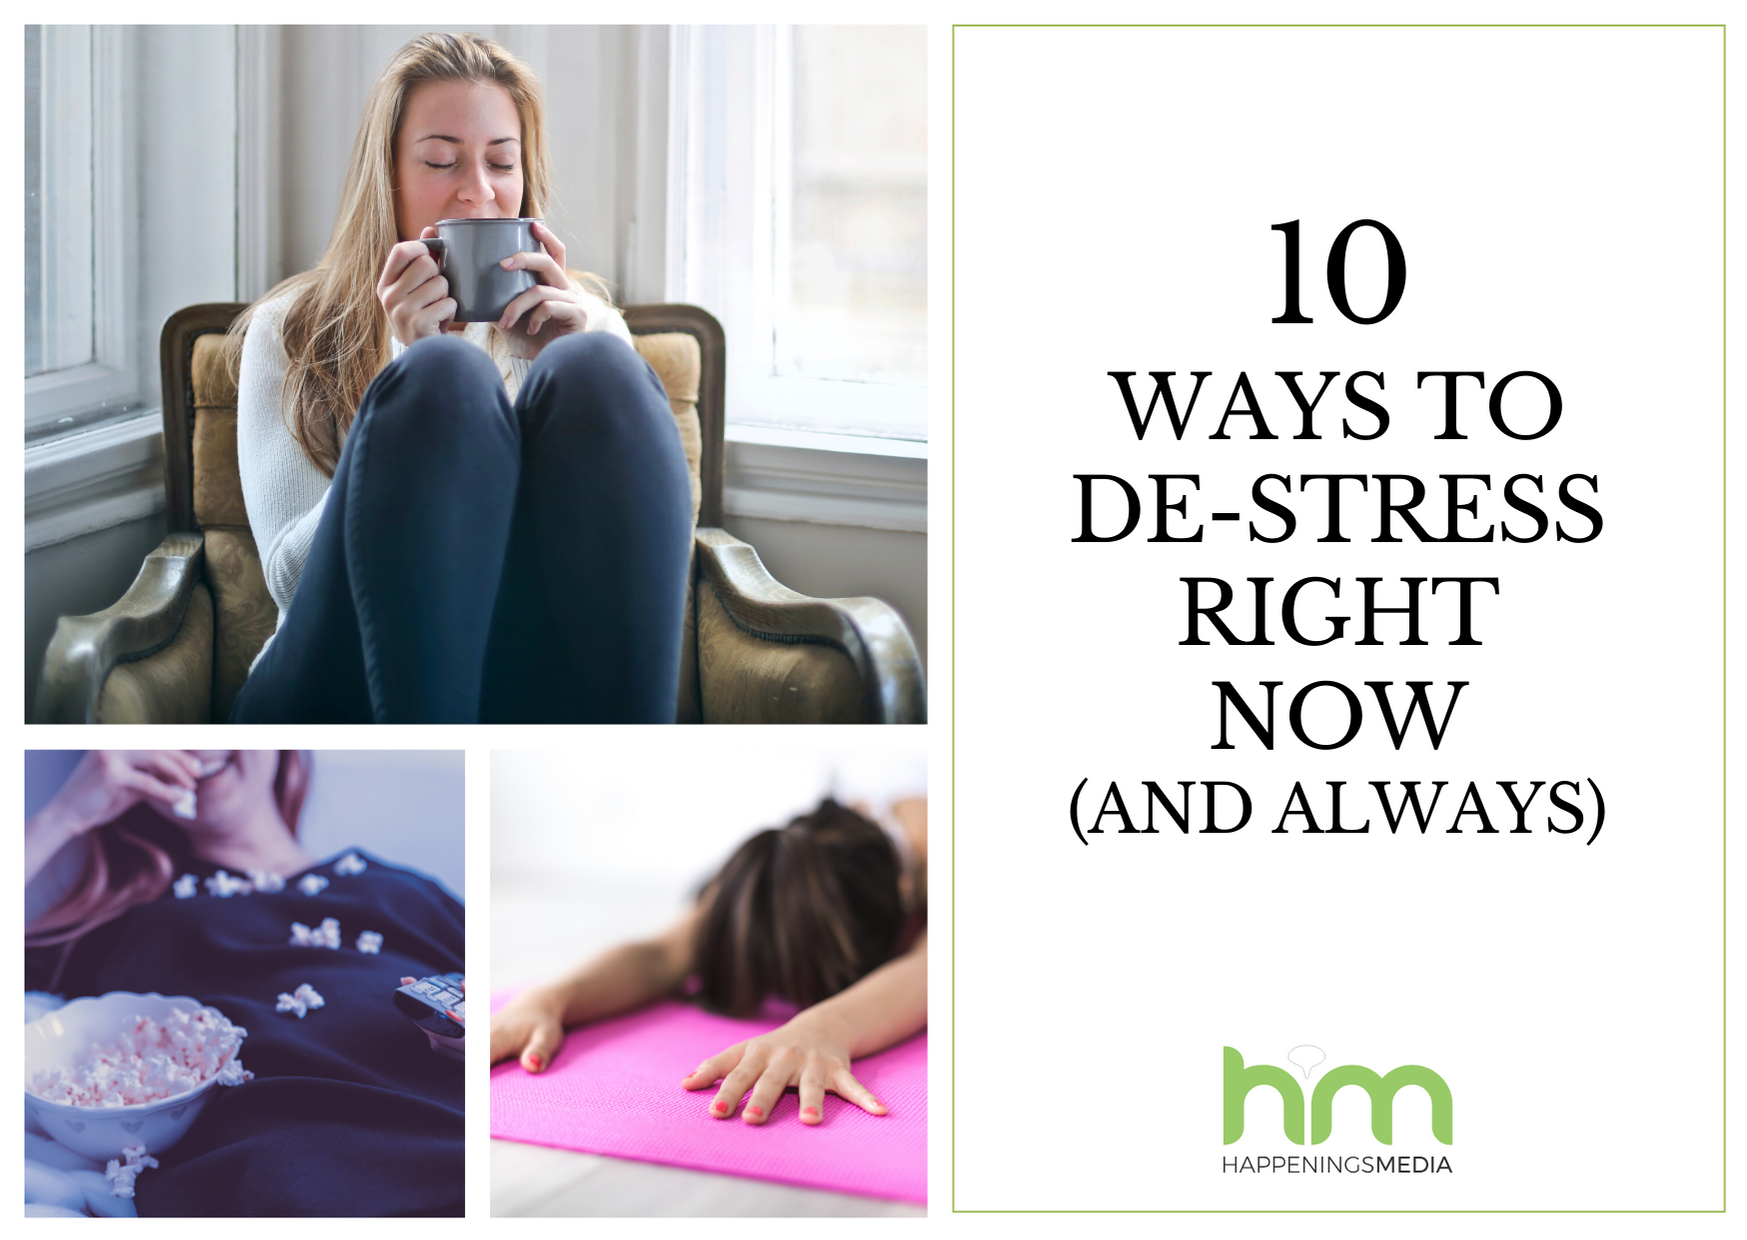 10 Ways to De-Stress Right Now (And Always)